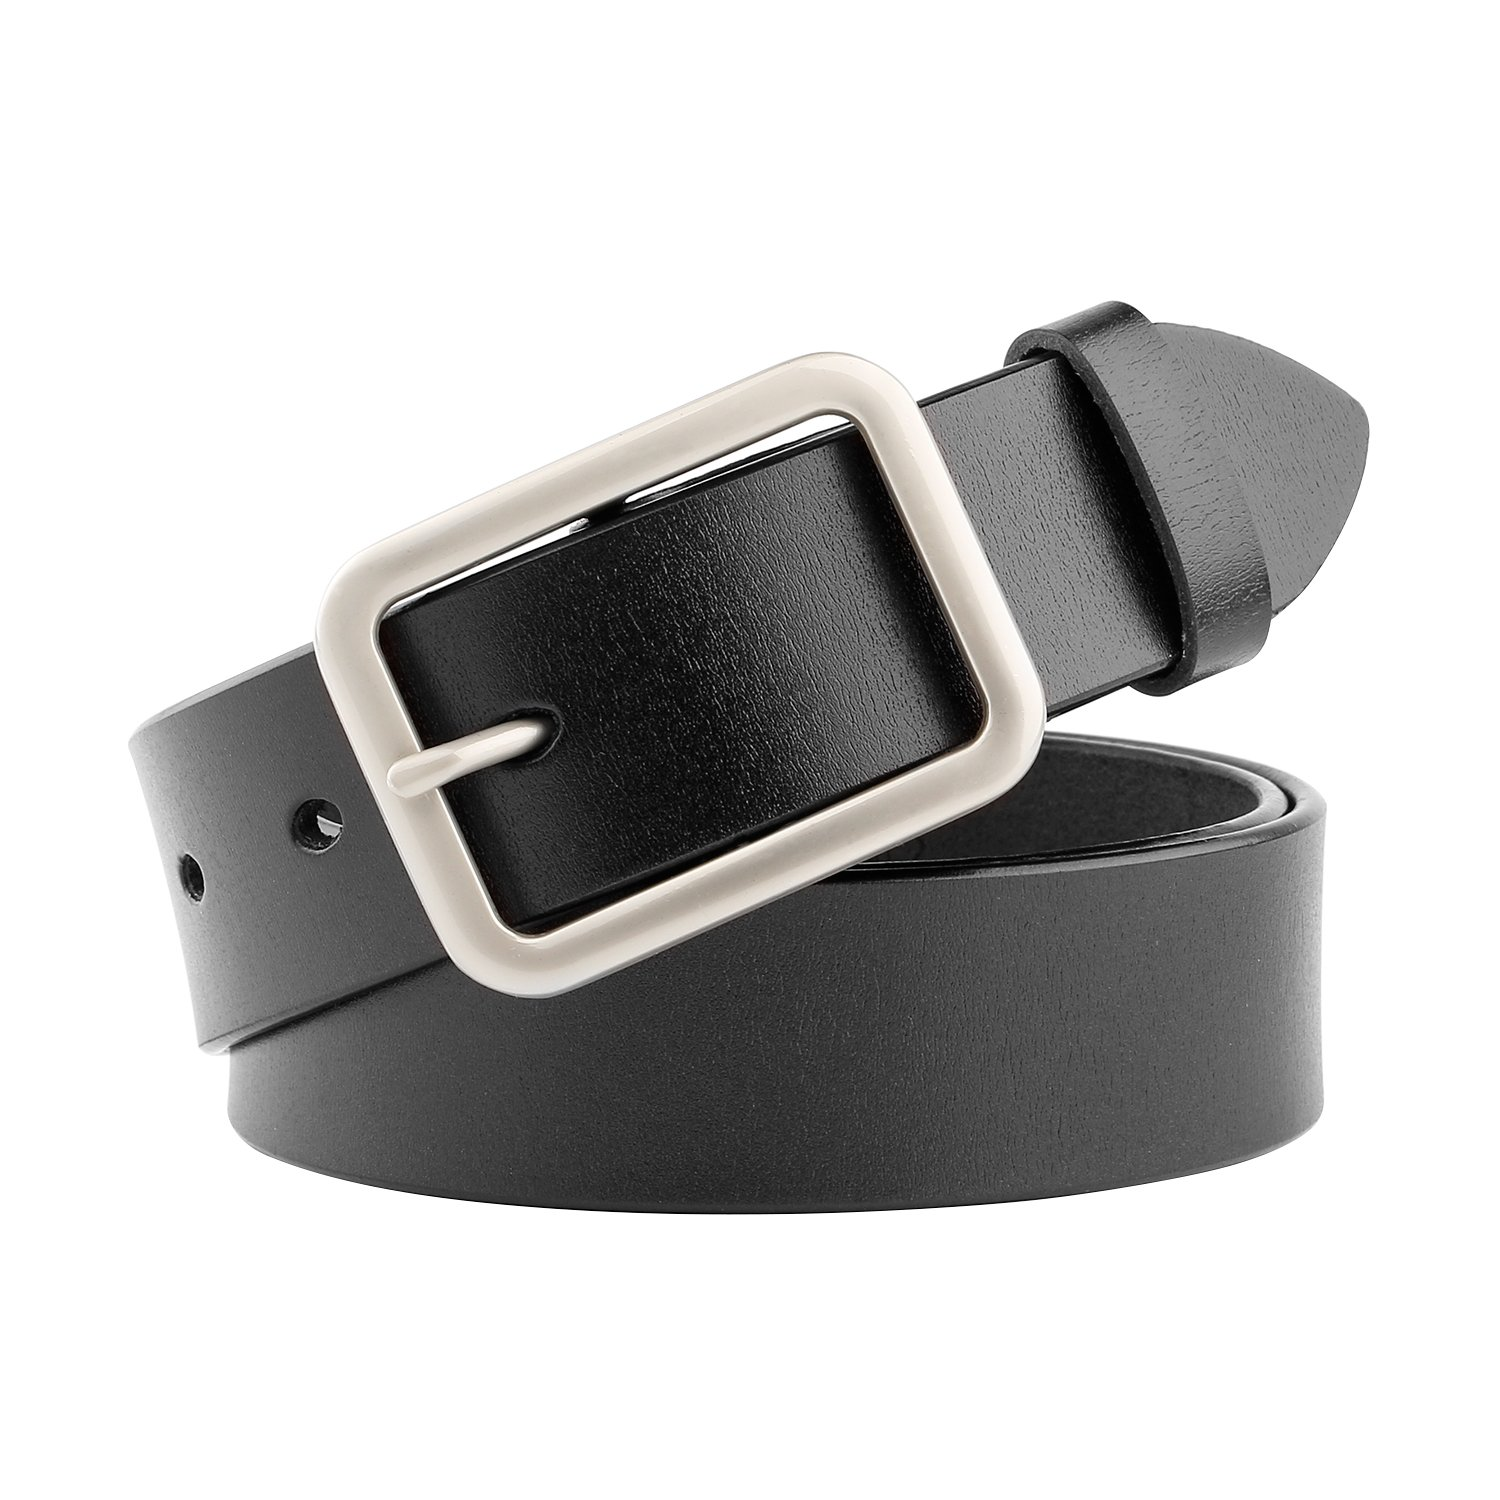 WHIPPY New Arrival Jeans Belt for Women Genuine Leather Belt with Pin Buckle, Black, 1.3''wide, Suit Pant Size 25''-29'' by Whippy (Image #1)